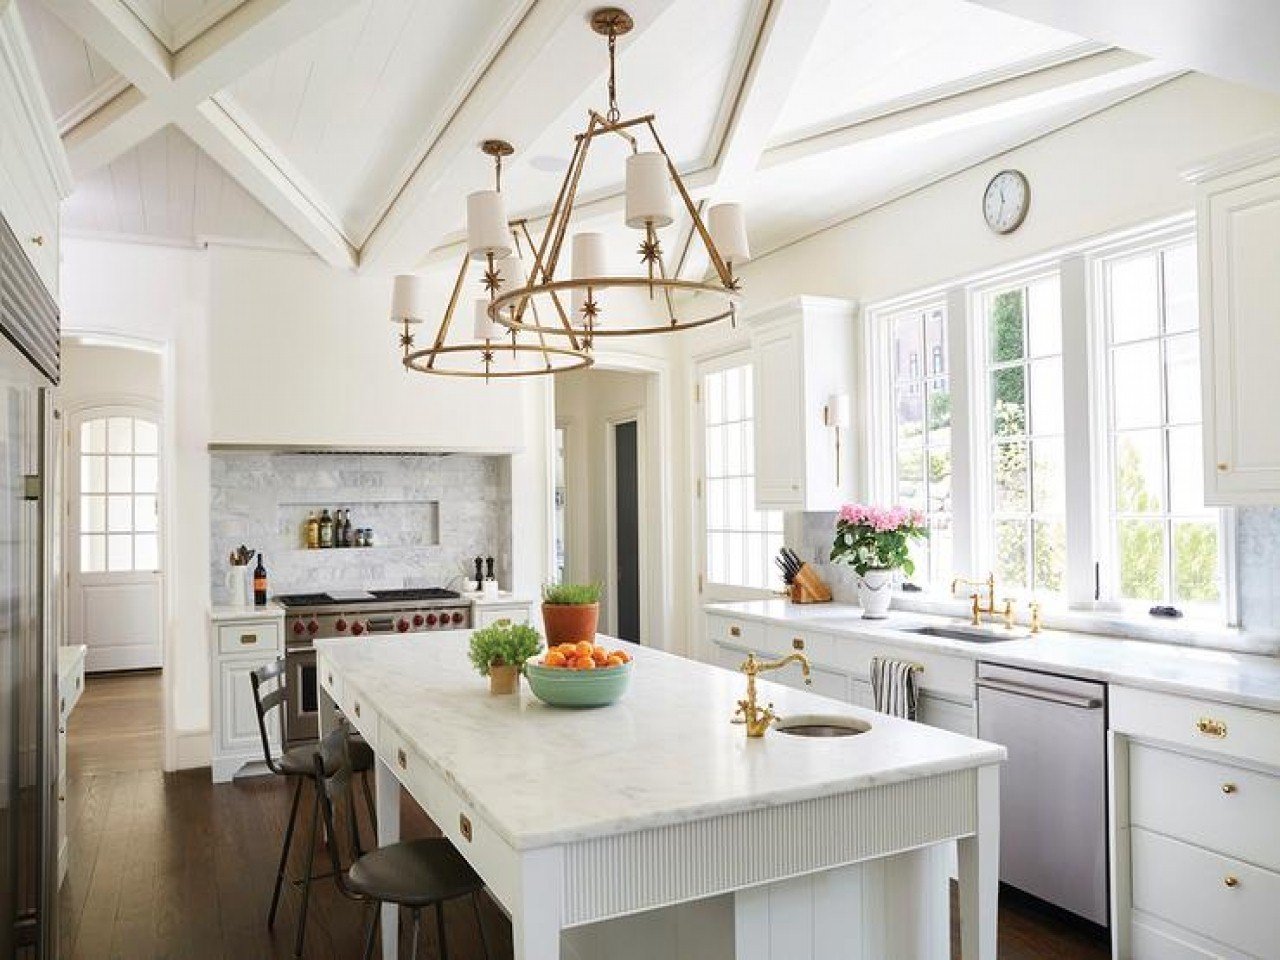 10 Stylish Kitchen Lighting Ideas To Get Inspired - Home ...